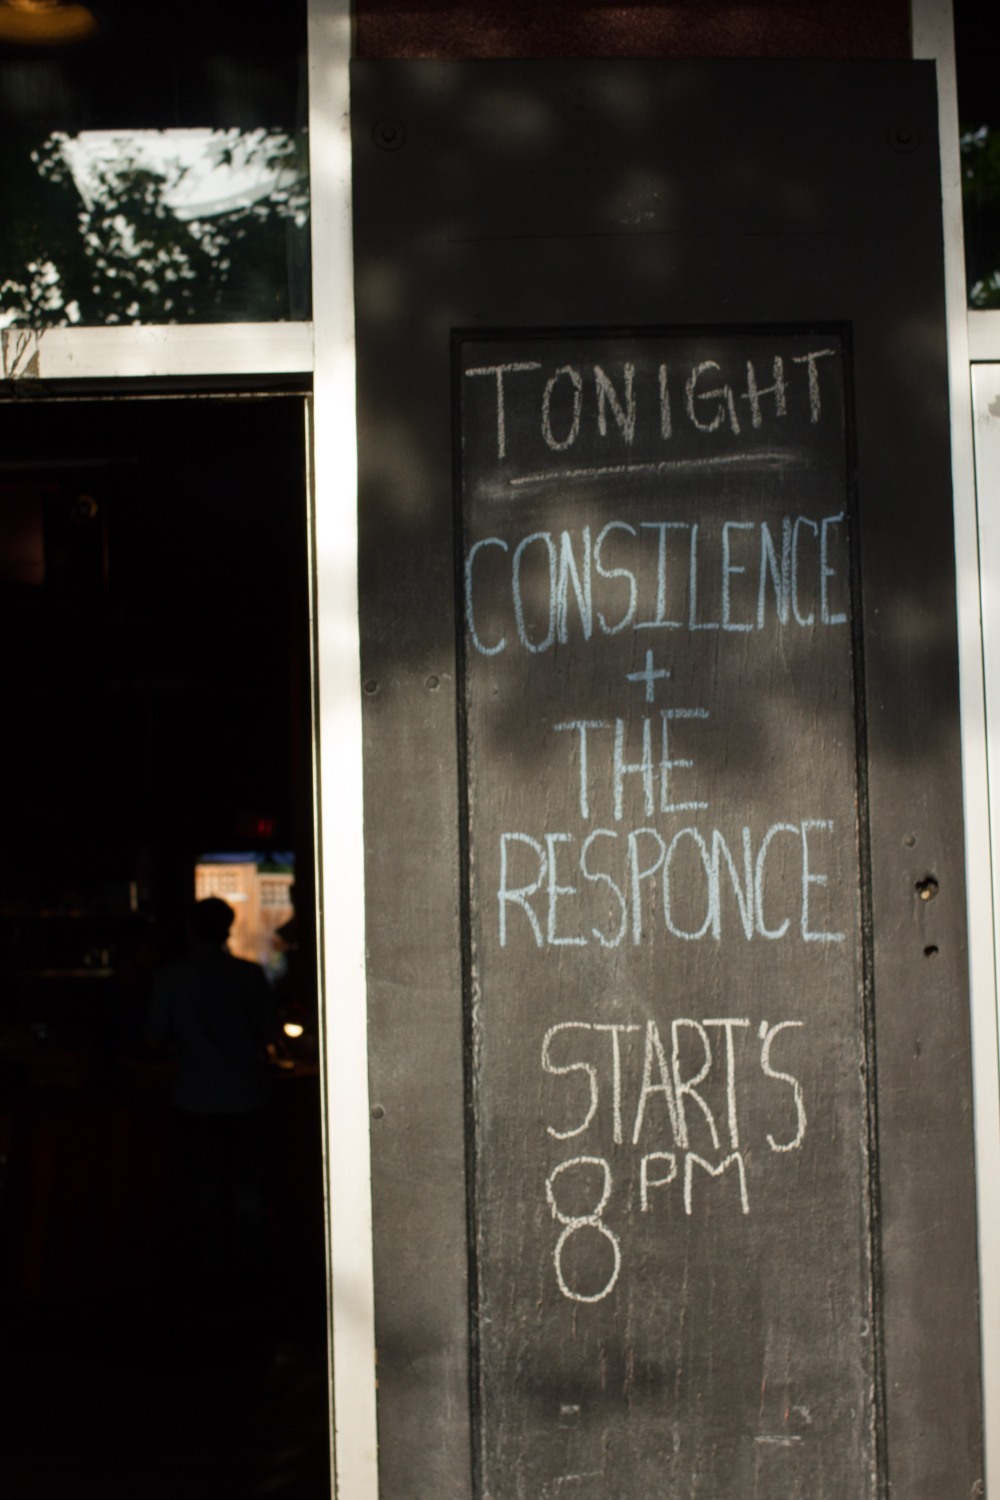 tonight - consilience